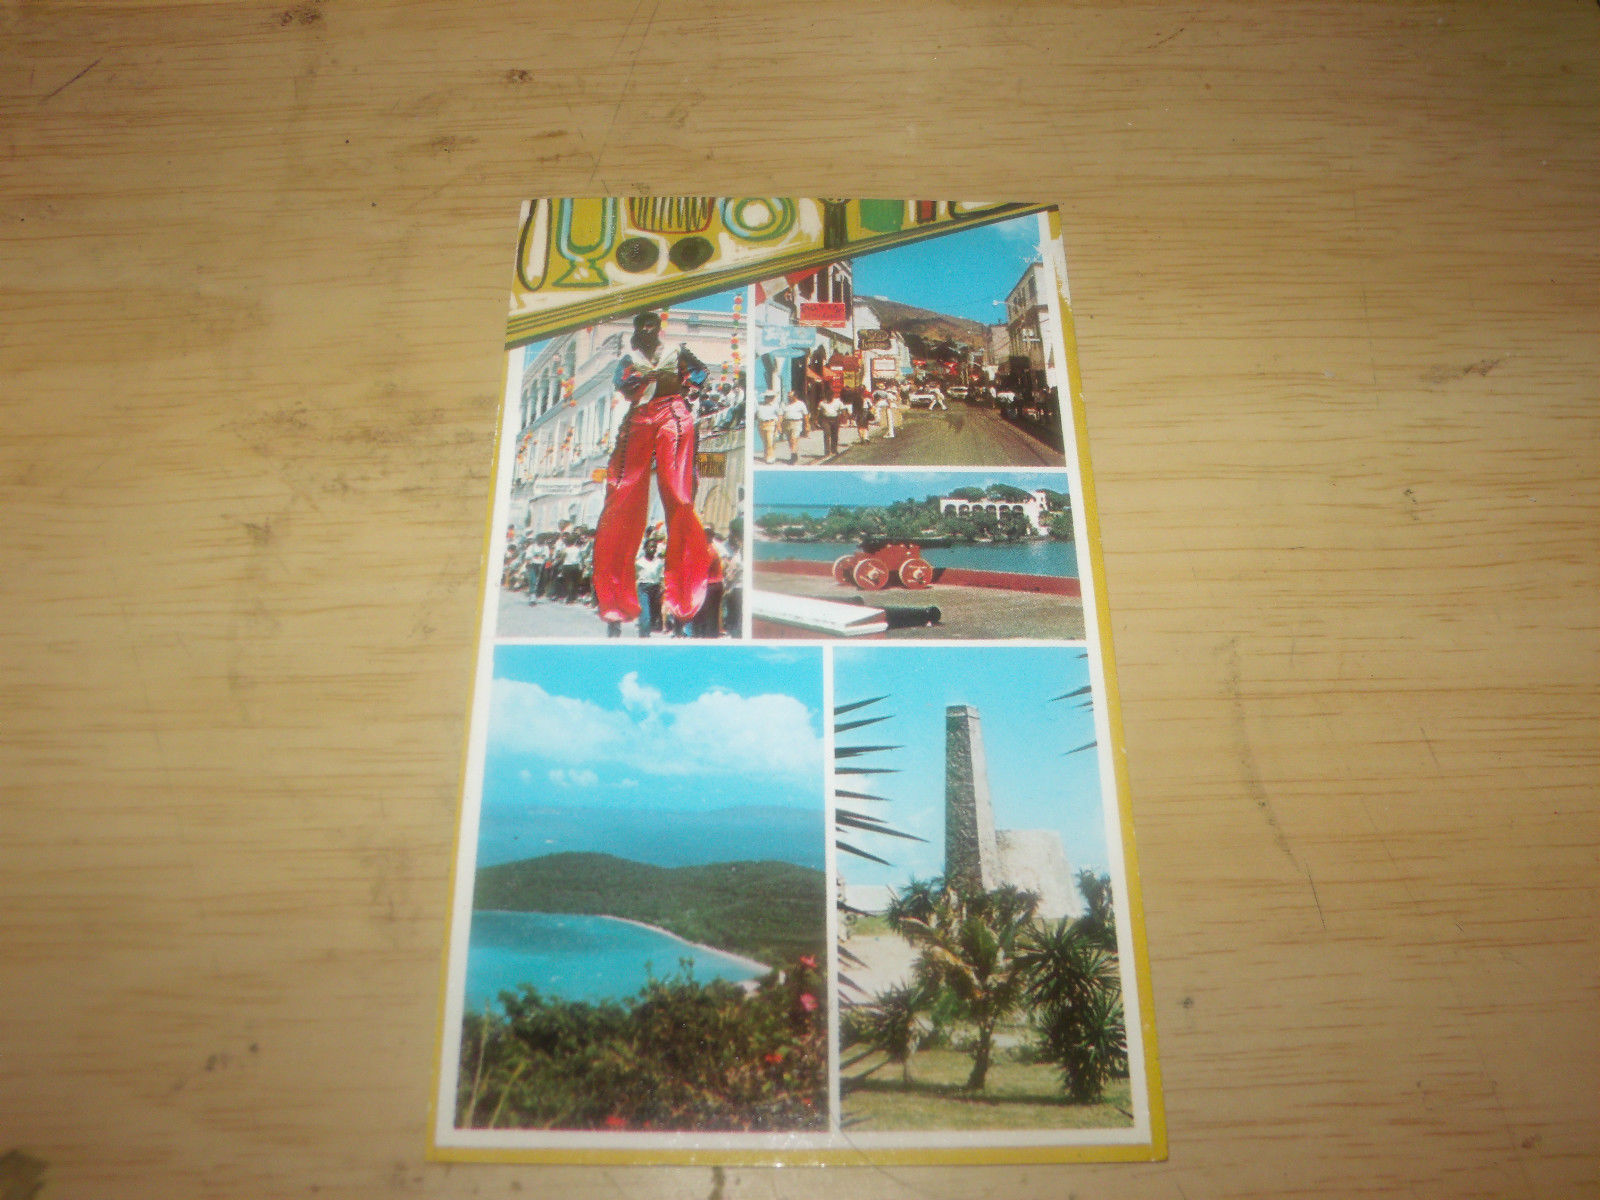 COLLAGE US VIRGIN ISLANDS VINTAGE UNUSED POSTCARD